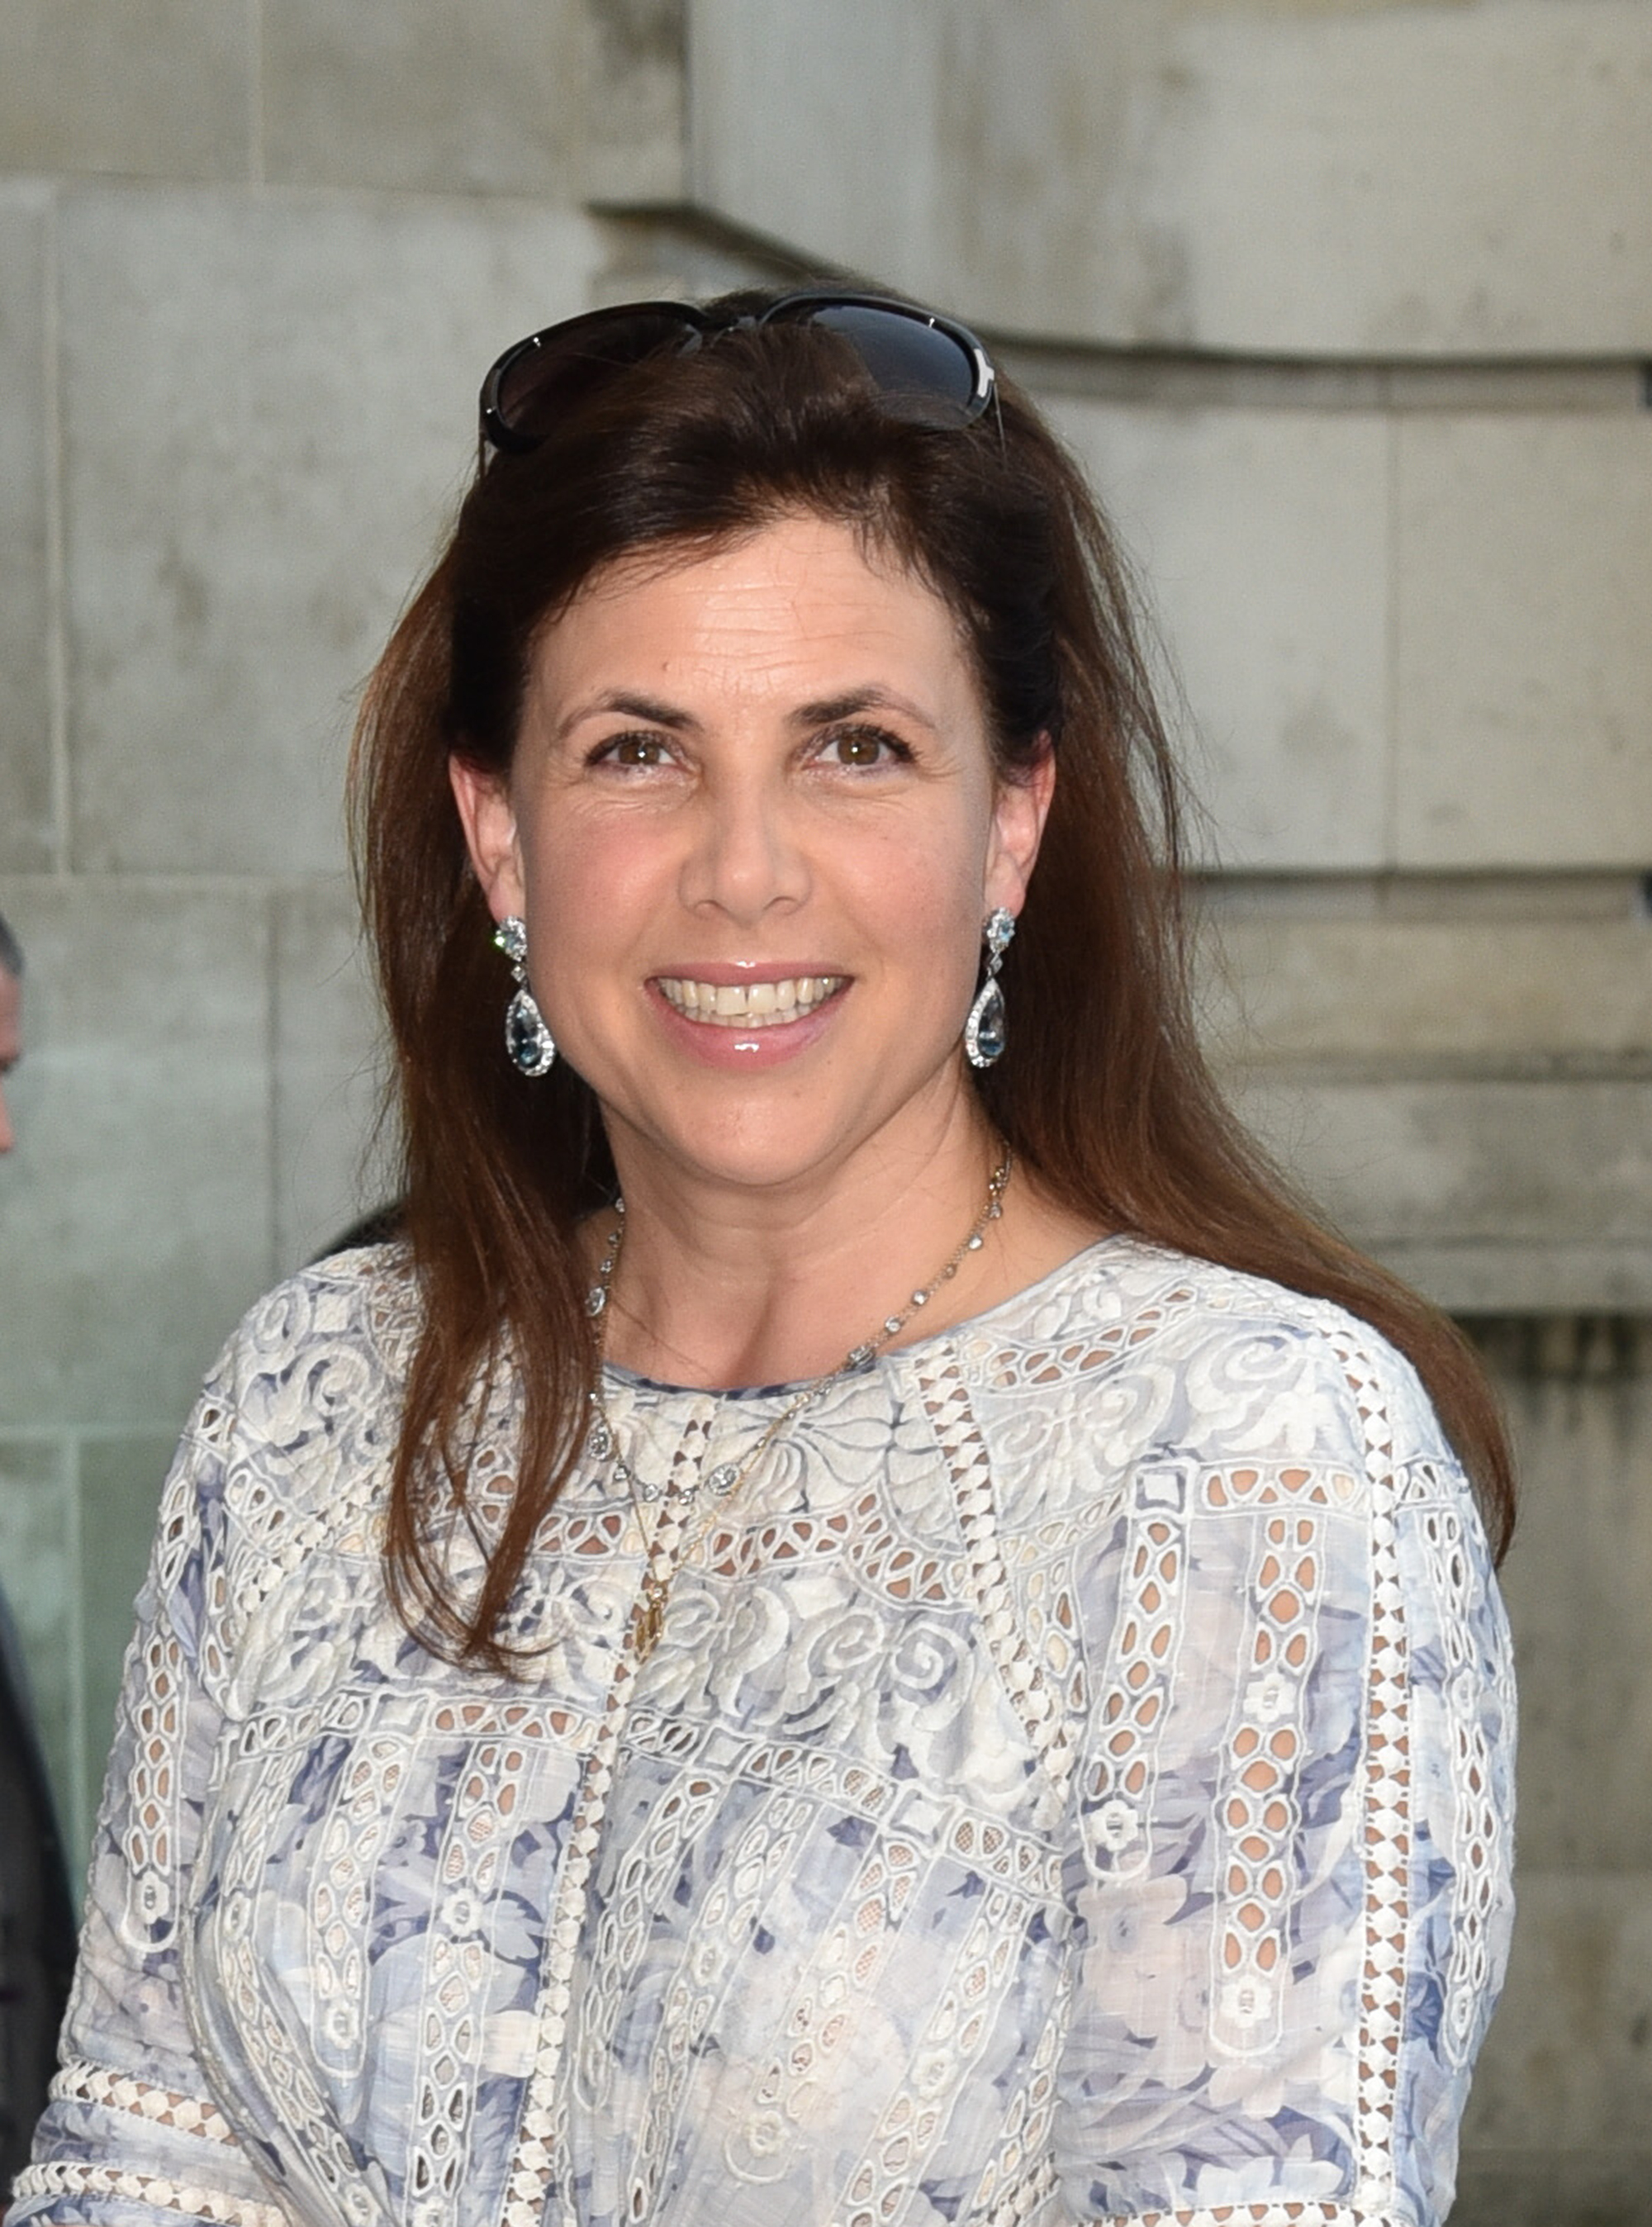 Kirstie Allsopp Causes Outrage Over Her Very Controversial